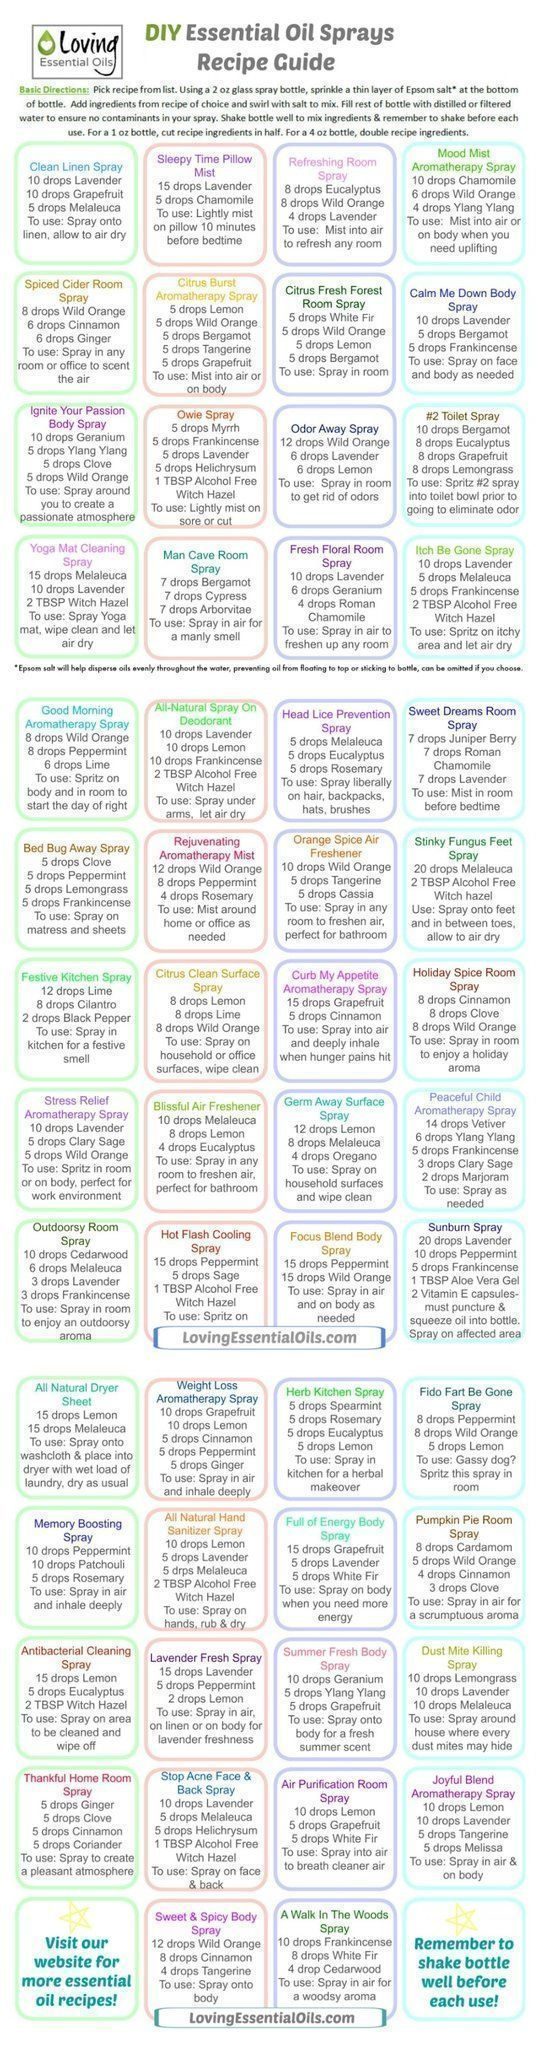 Essential Oil Sprays Recipe Guide. http://www.lovingessentialoils.com/blogs/diy-recipes/homemade-essential-oil-sprays-made-easy Whether you are a DIYer or not, making essential oils sprays is super simple. You only need a few items and the process takes a few minutes. #homemadeessentialoils